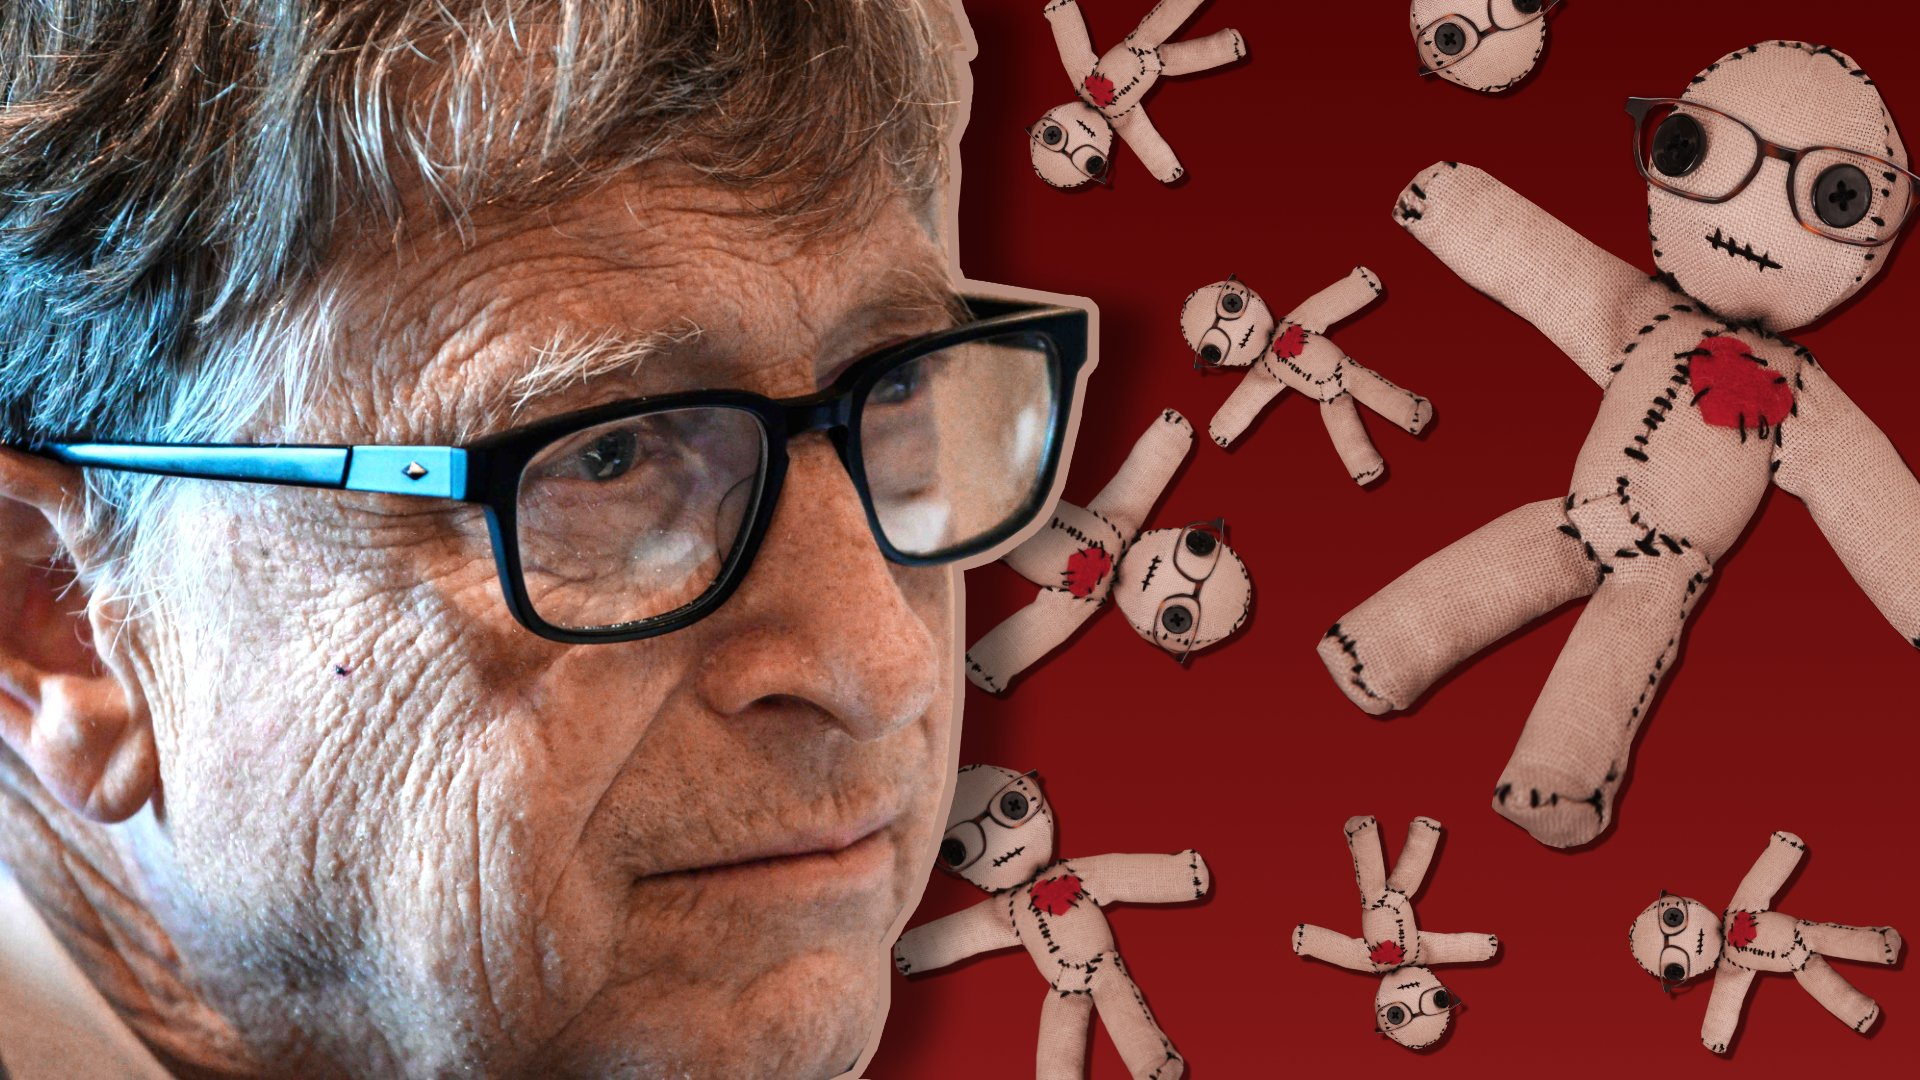 Bill Gates next to images of a voodoo doll